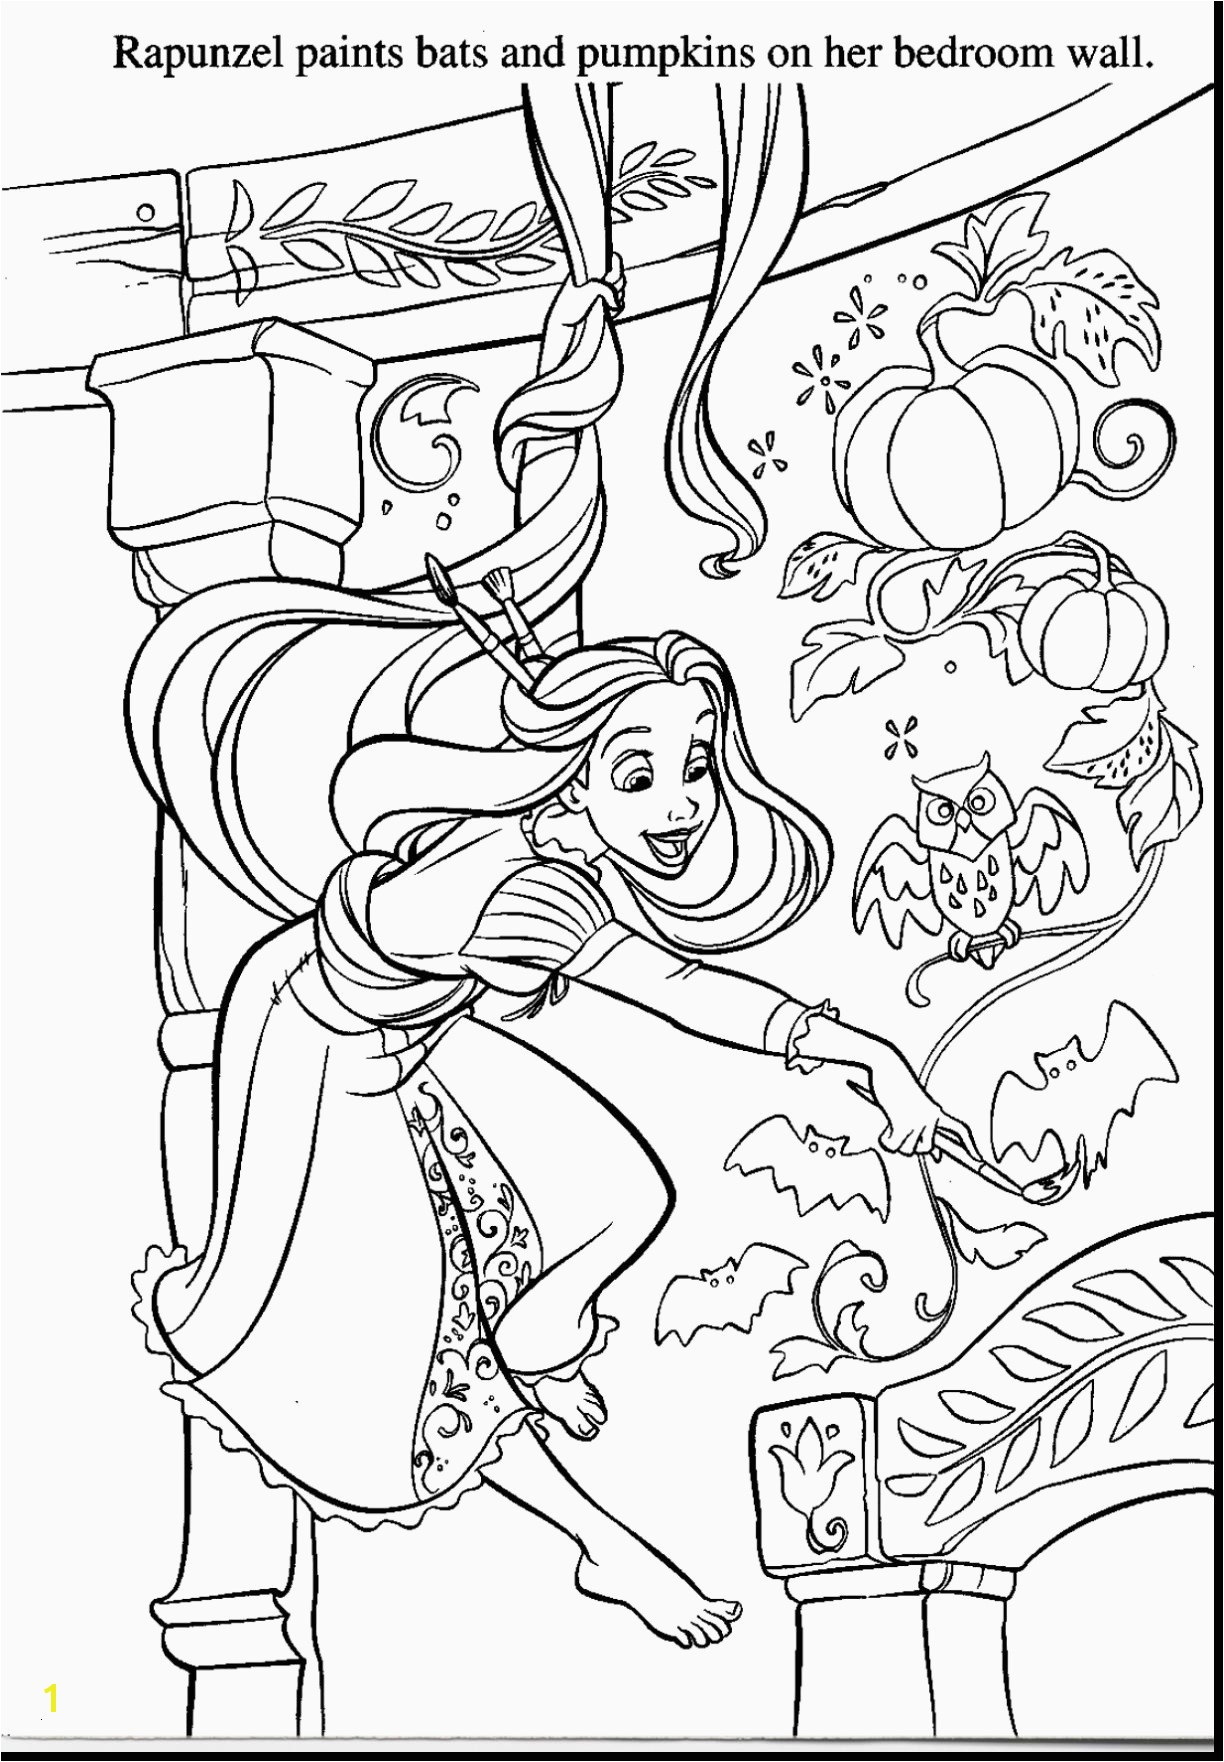 Rapunzel Coloring Pages Pdf Nice Halloween Coloring Pages Pdf Letramac